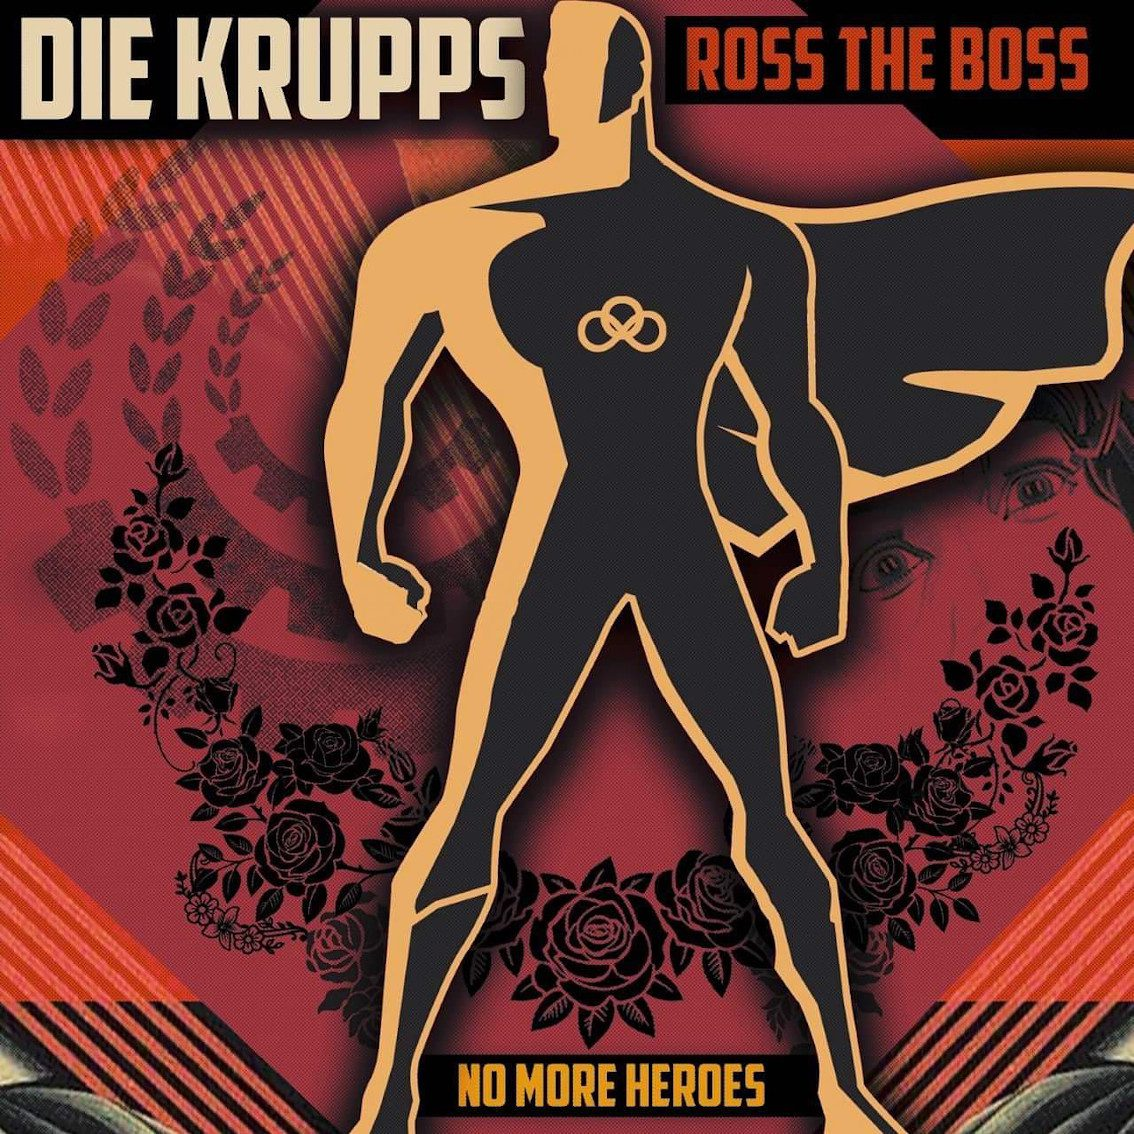 Die Krupps and Ross The Boss cover The Stranglers' 'No More Heroes'